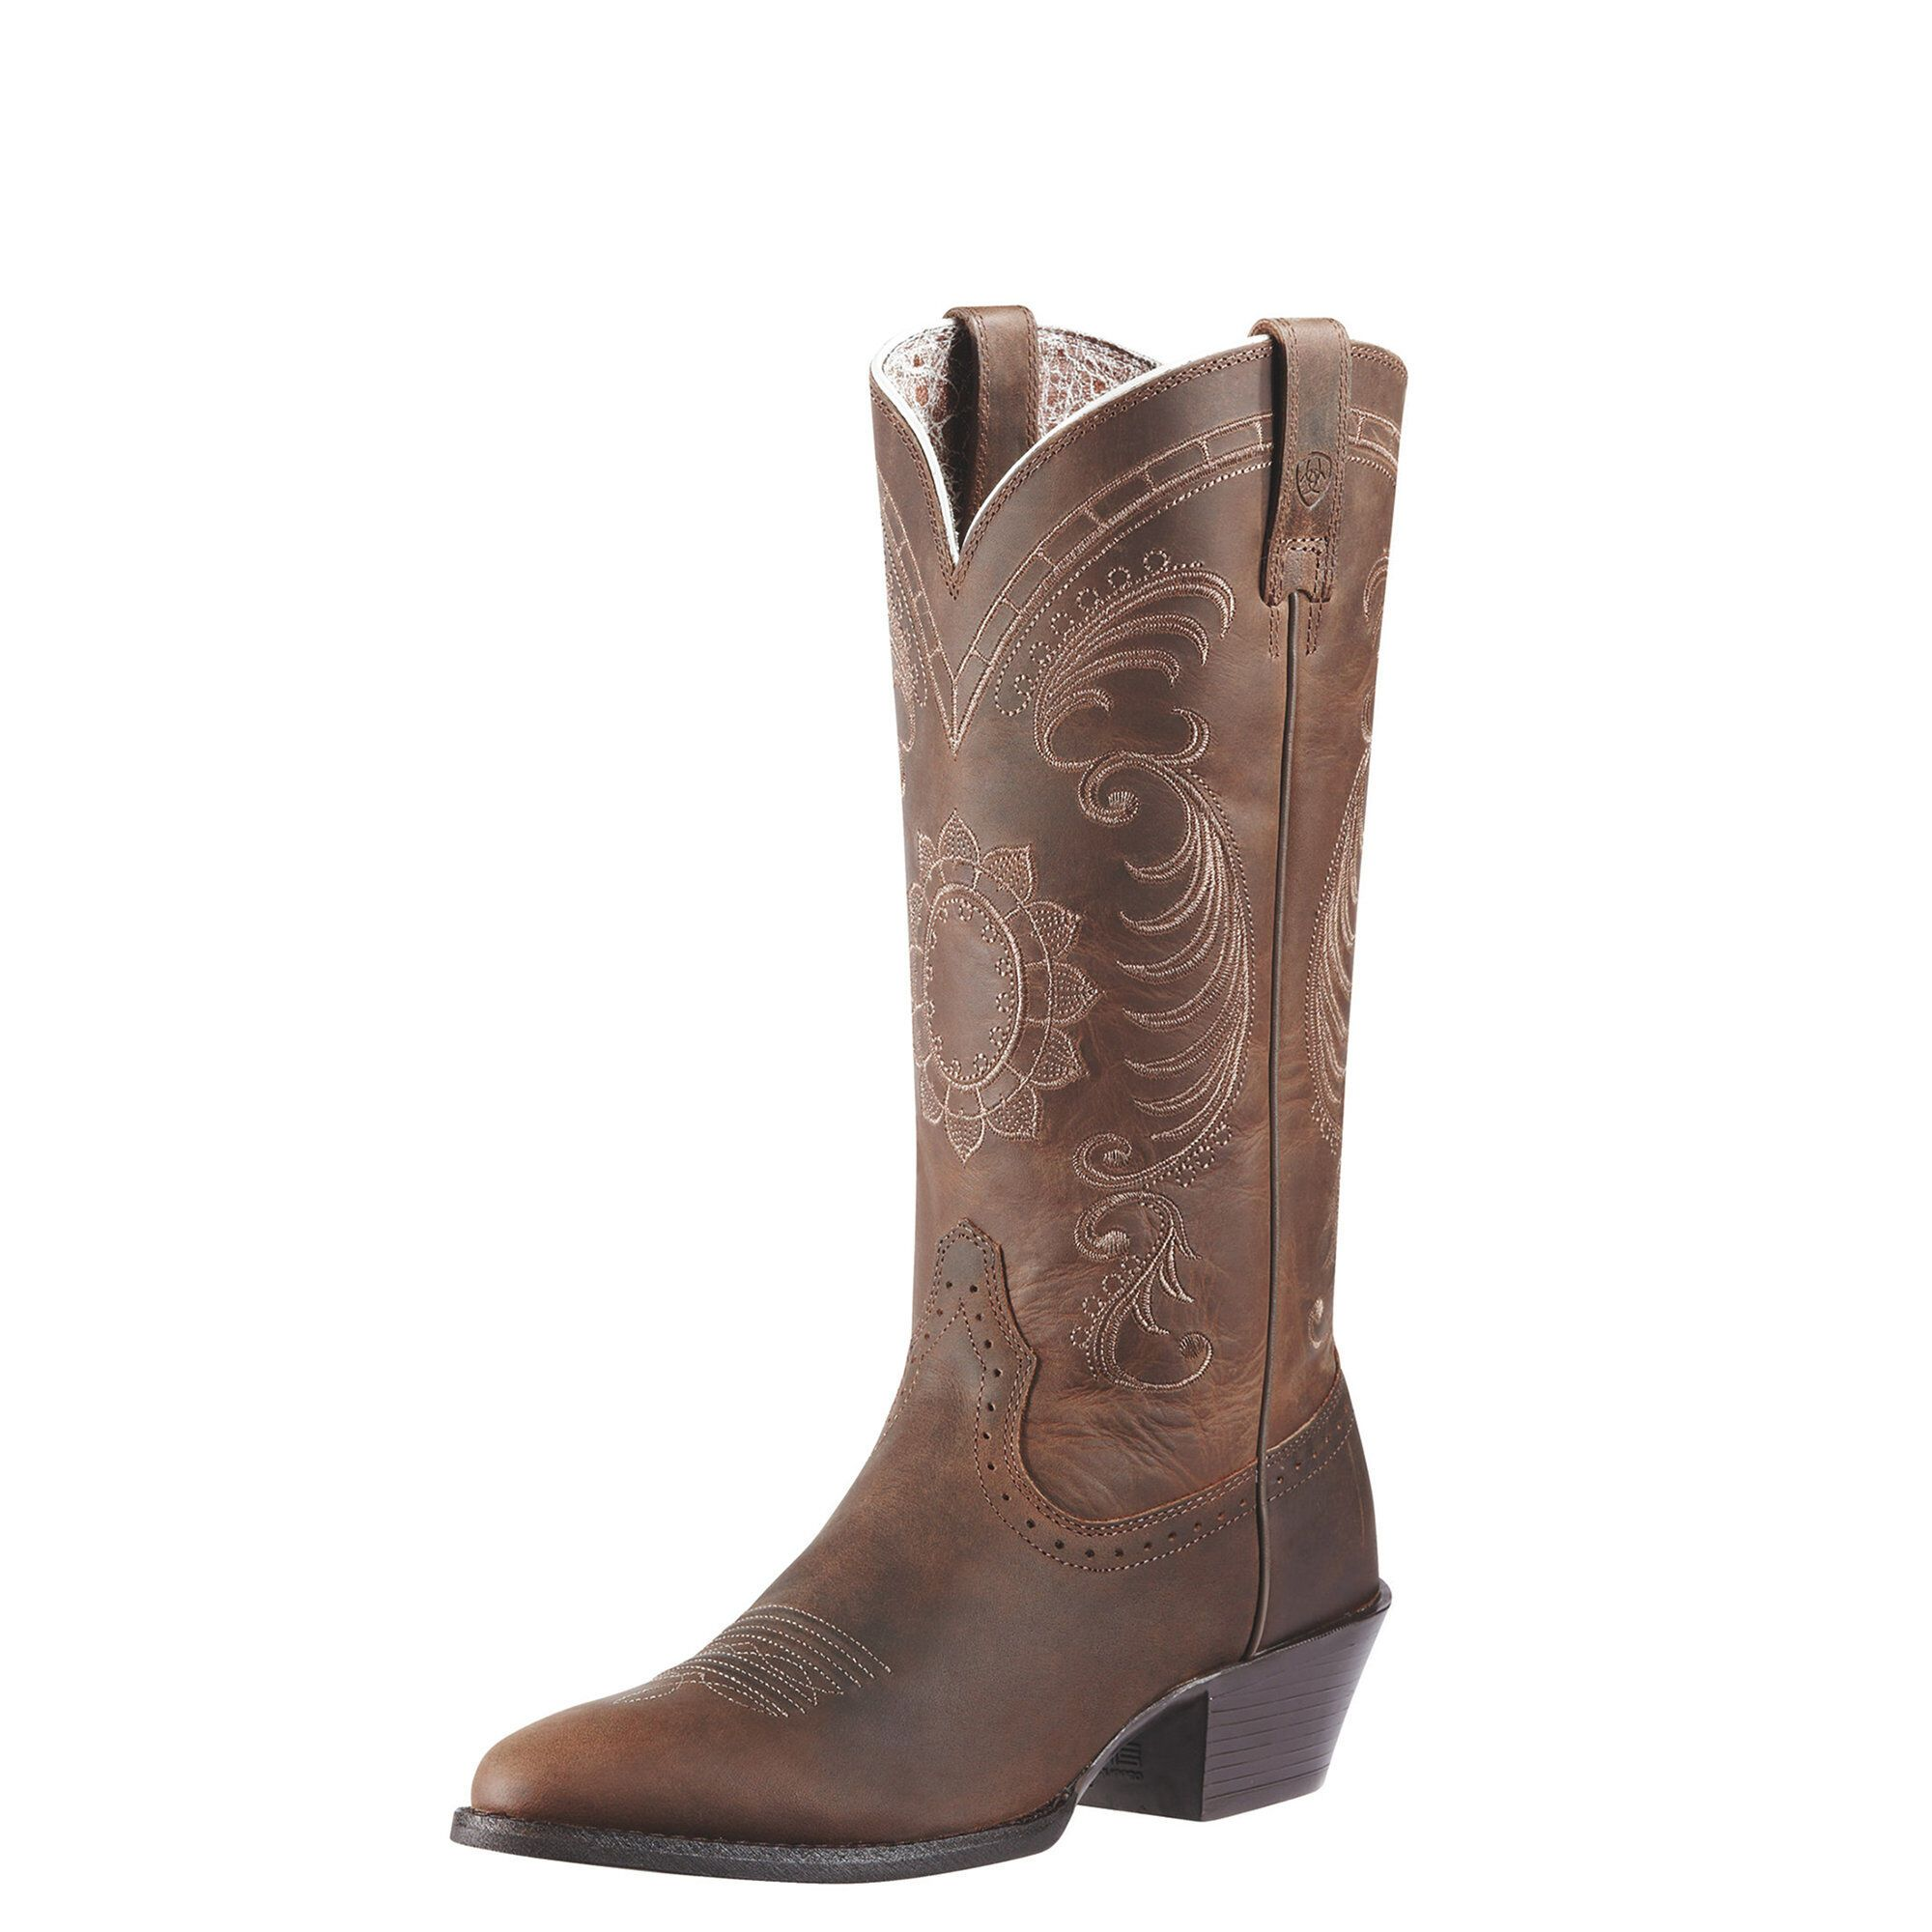 Buy ARIAT Women's Ammorette Western Cowboy Boot, Brushed